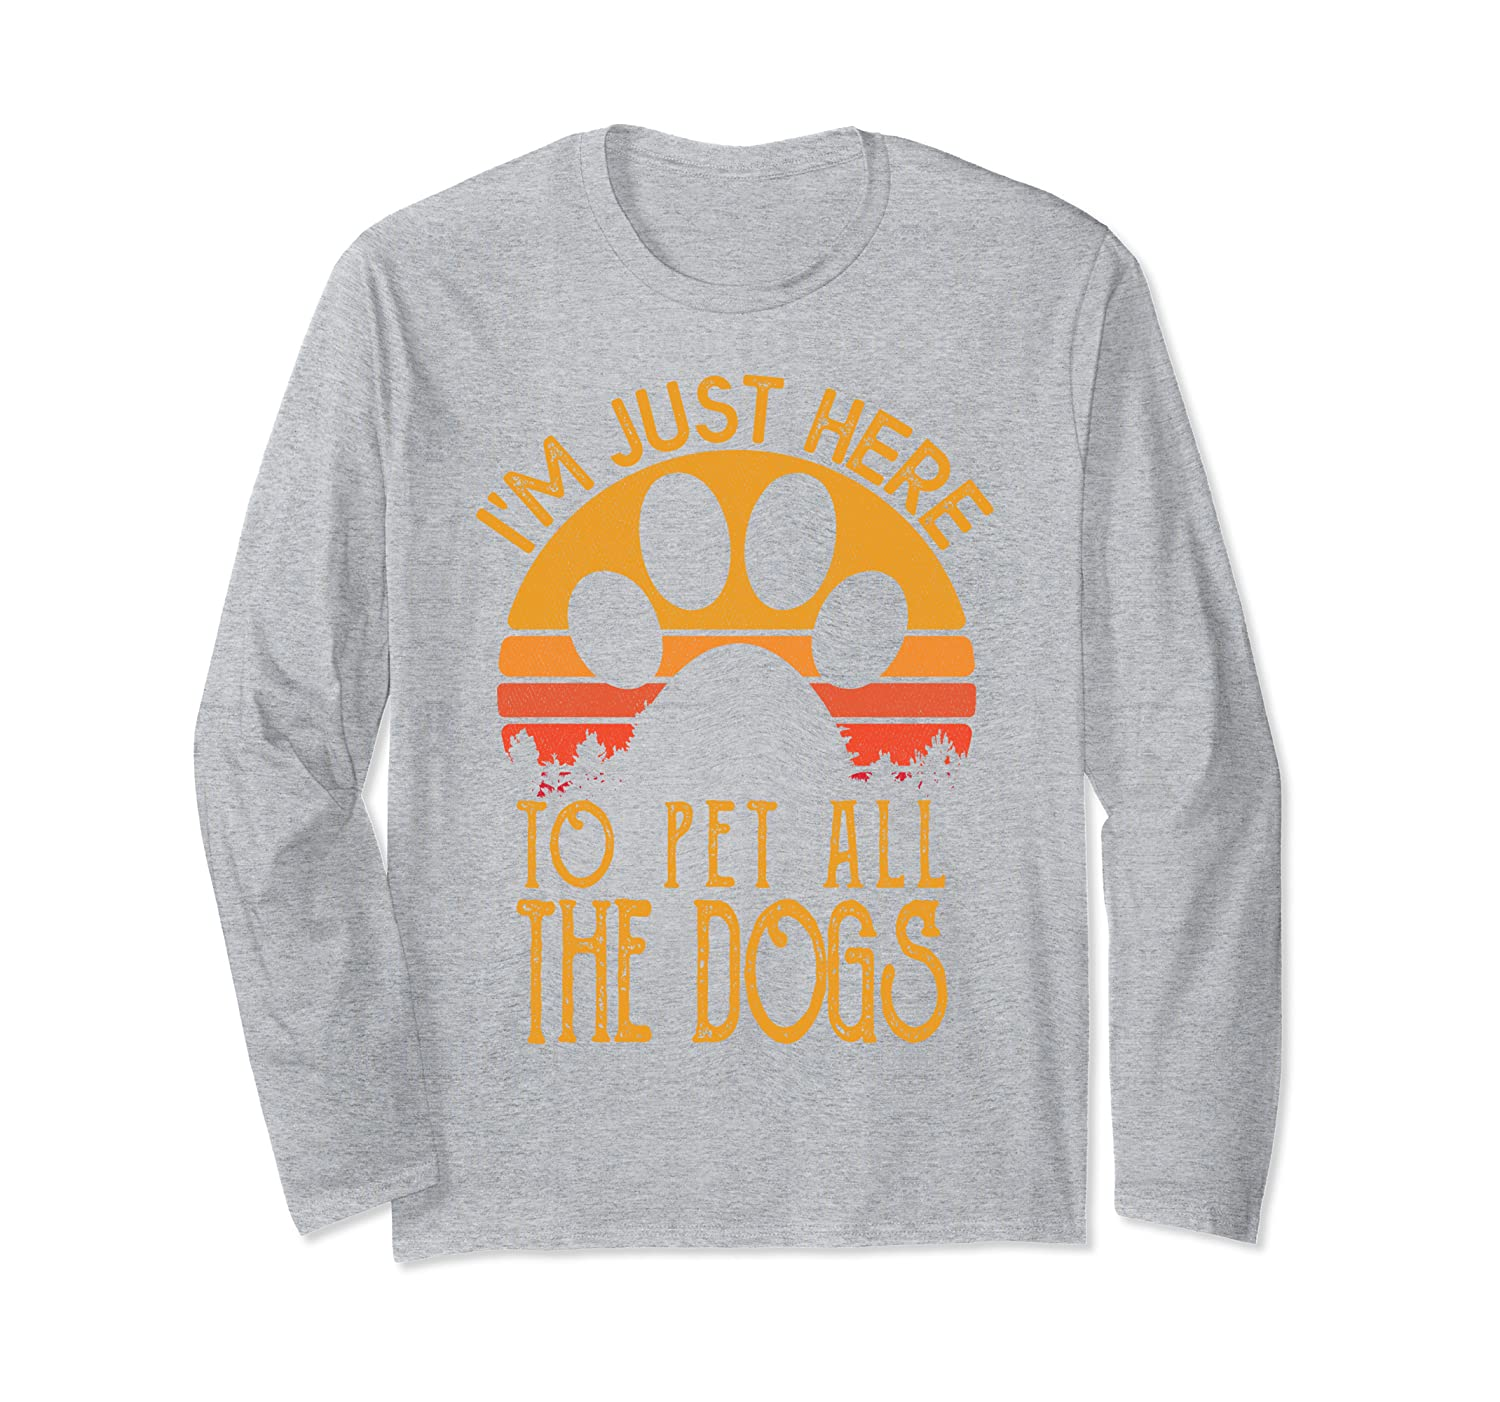 I'm Just Here to Pet All the Dogs Shirt Funny Puppy Lover Long Sleeve T-Shirt